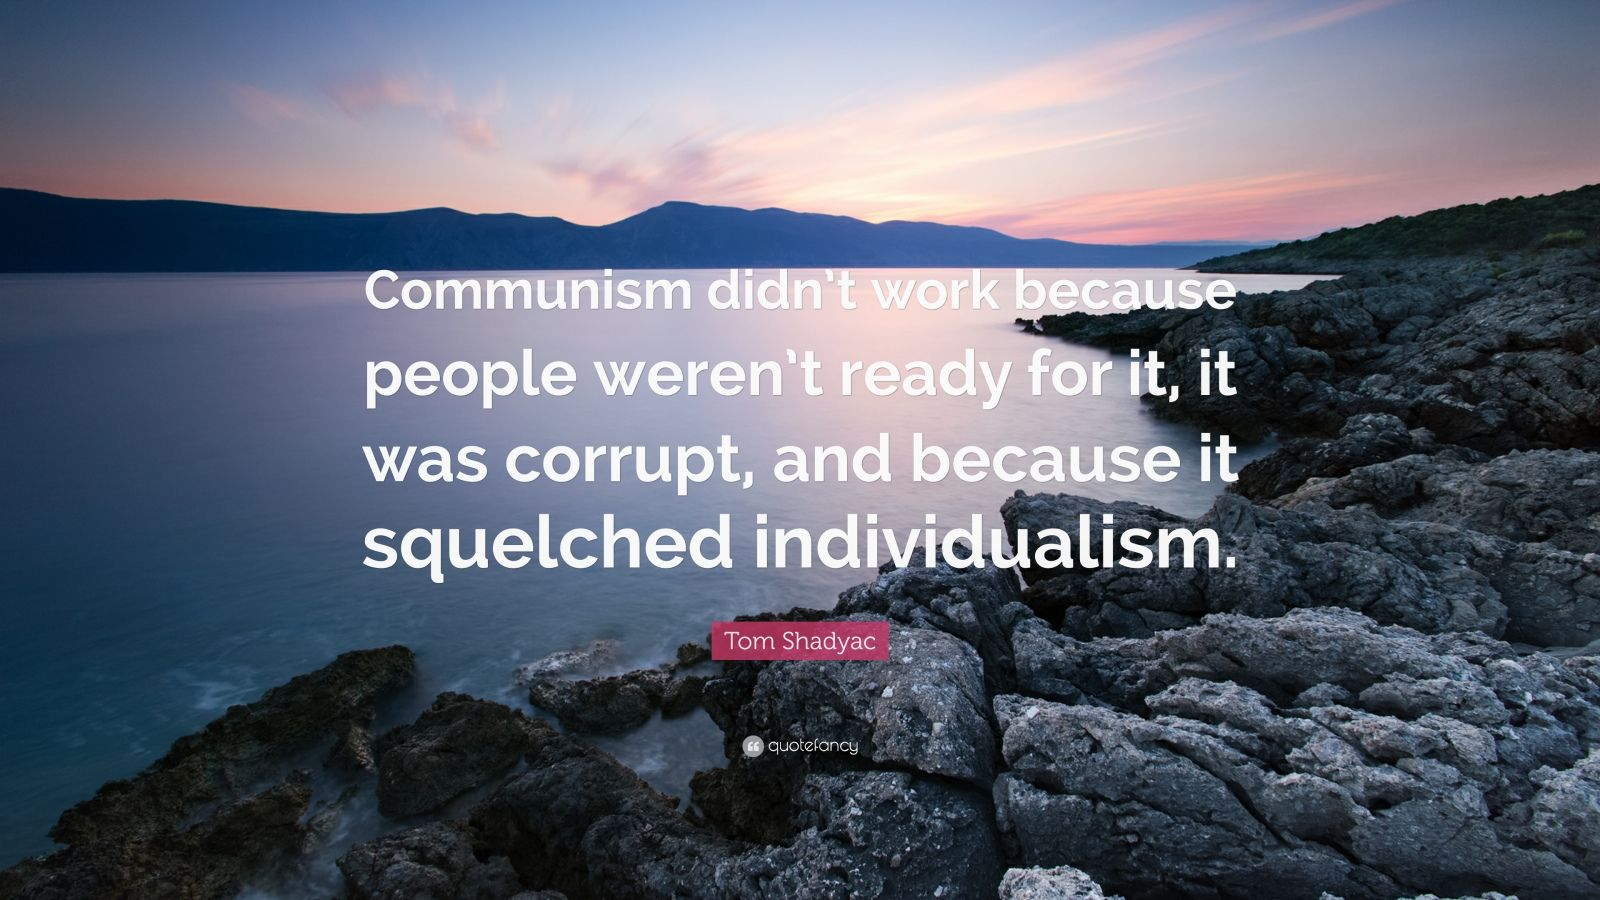 """Tom Shadyac Quote: """"Communism didn't work because people weren't ready for it, it was corrupt, and because it squelched individualism."""""""